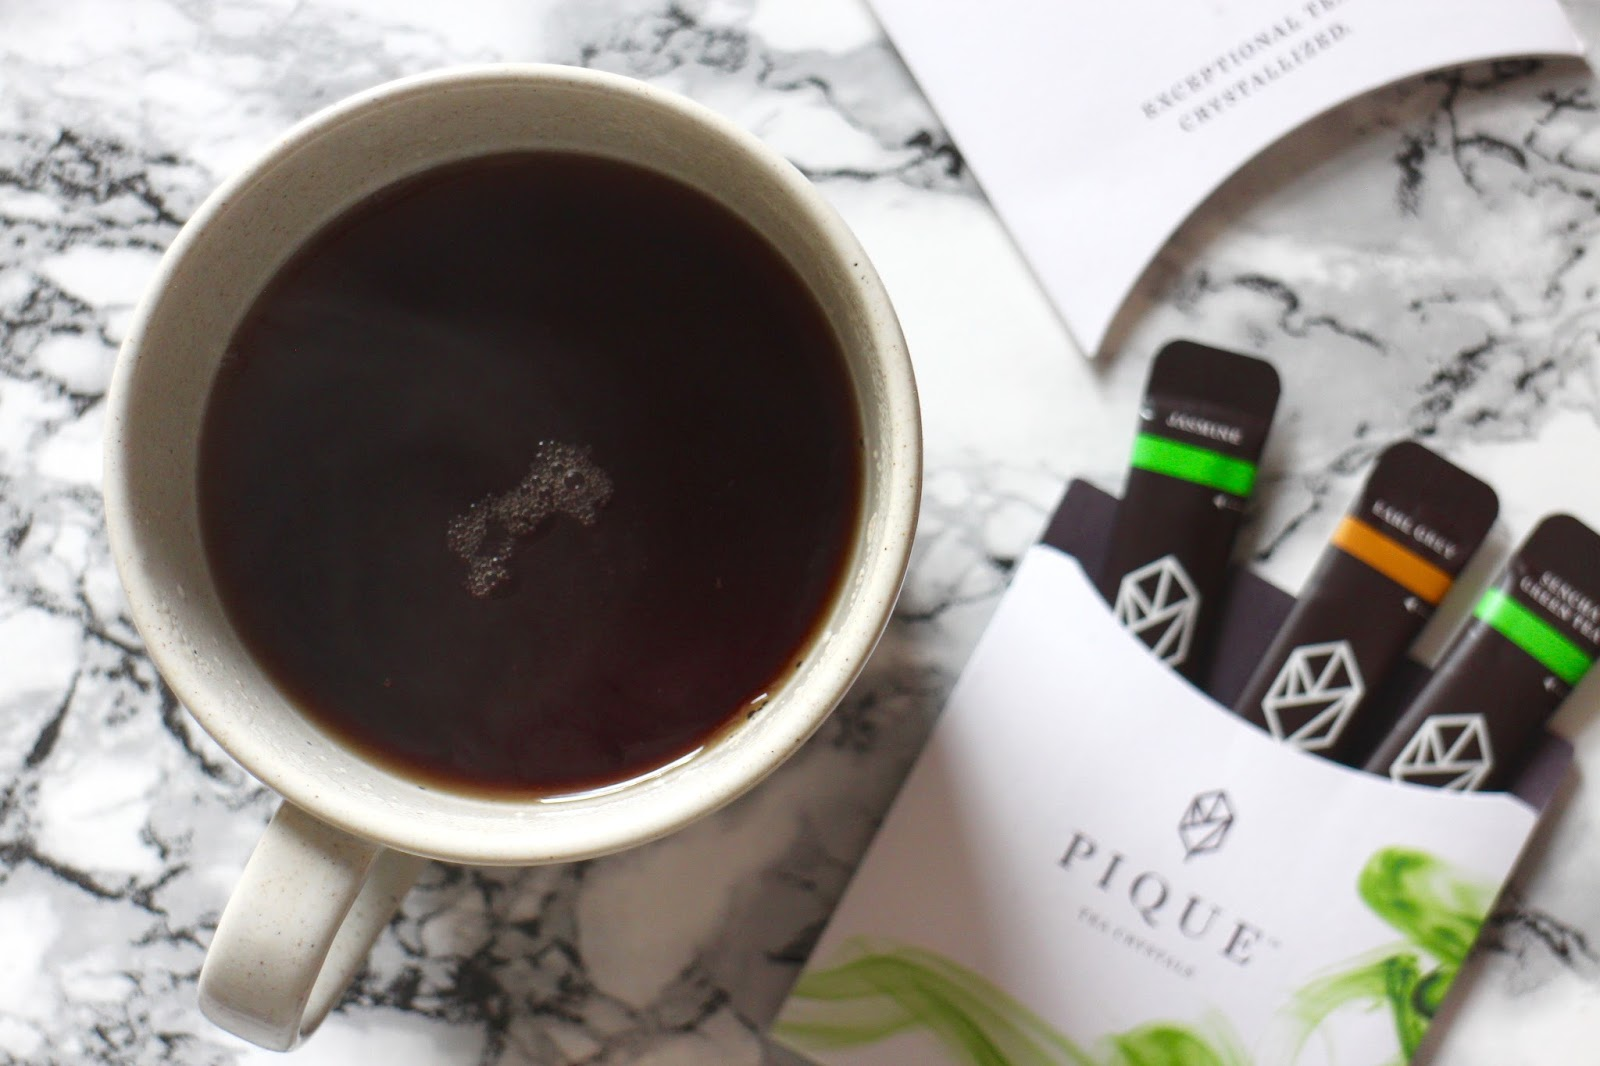 pique organic tea review